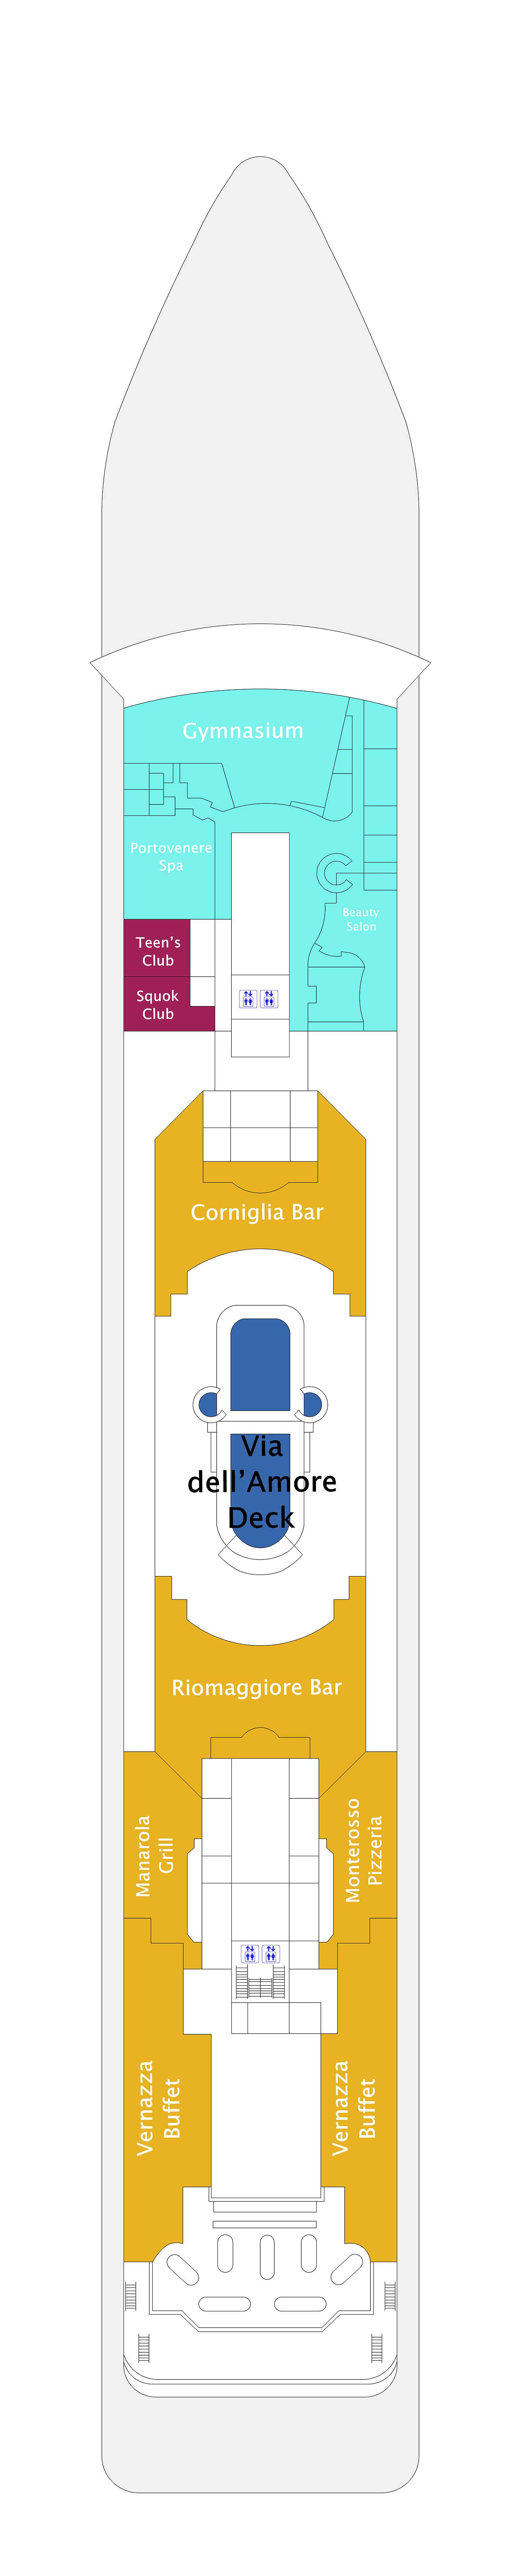 Costa neoRiviera deck plan 11